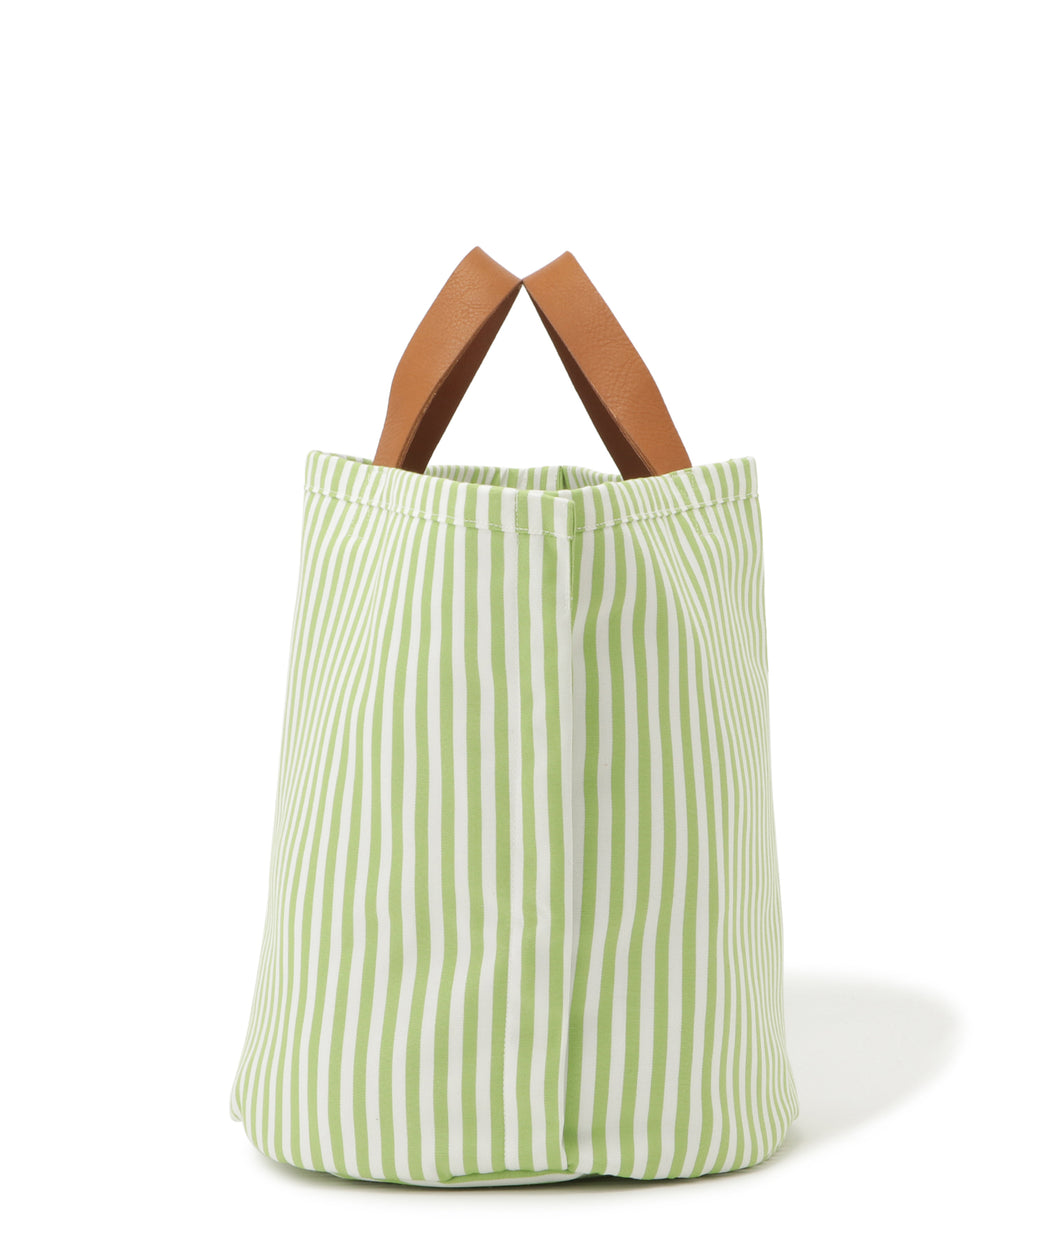 Large leather-trimmed canvas tote